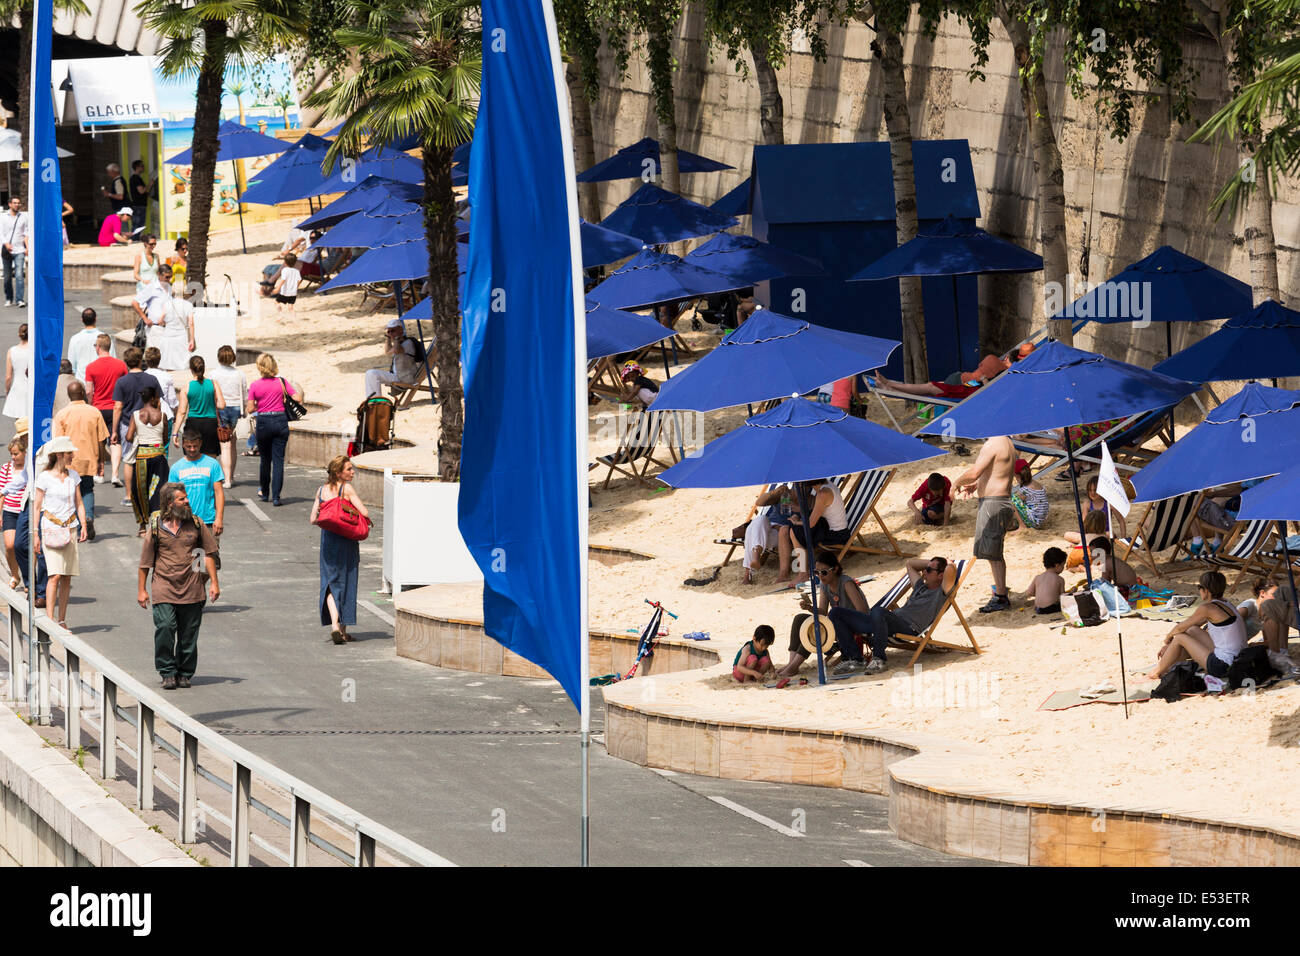 Paris, France. 19th July, 2014. Inaugurated in 2002, Paris Plages (Paris Beaches) is a free summer event that transforms - Stock Image